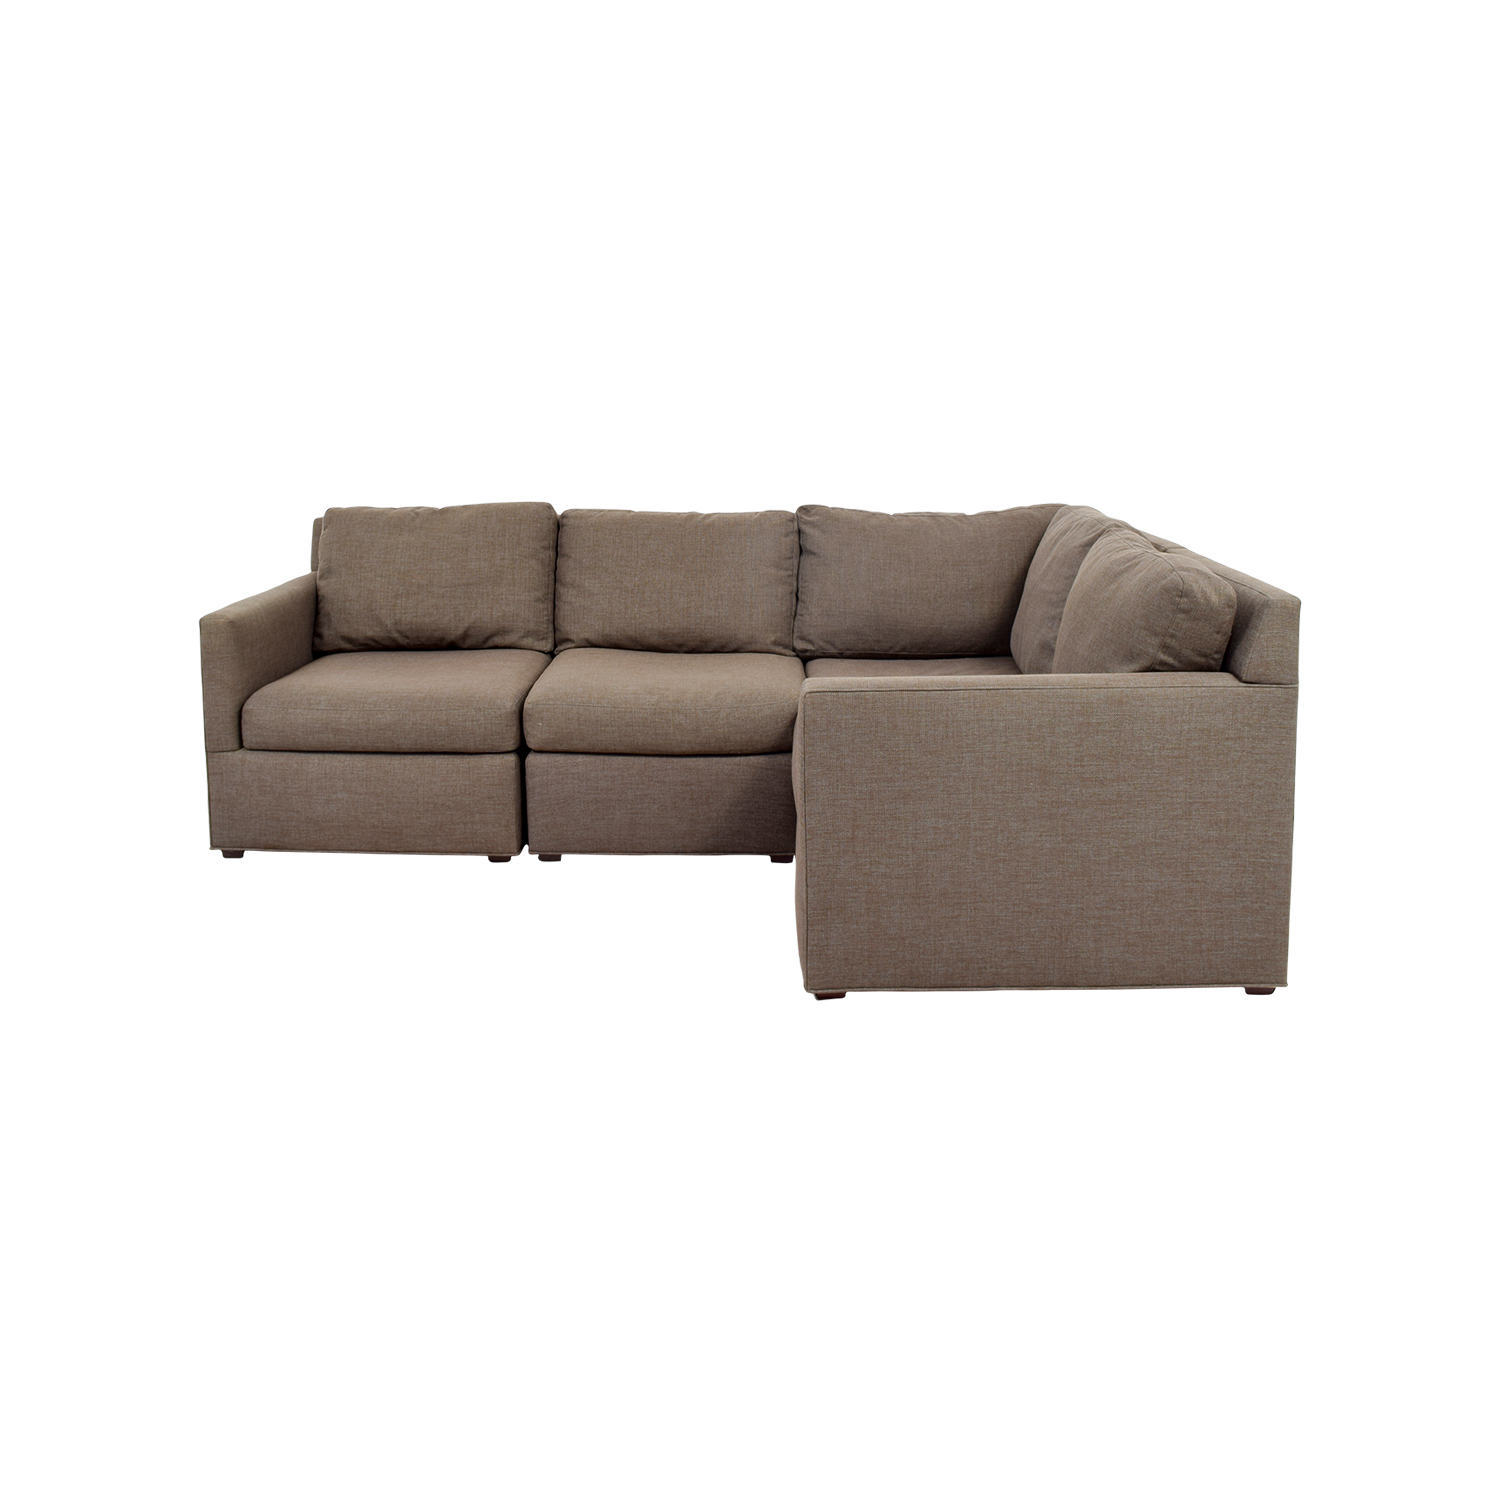 crate and barrel davis sofa leather silver uk sectionals used for sale